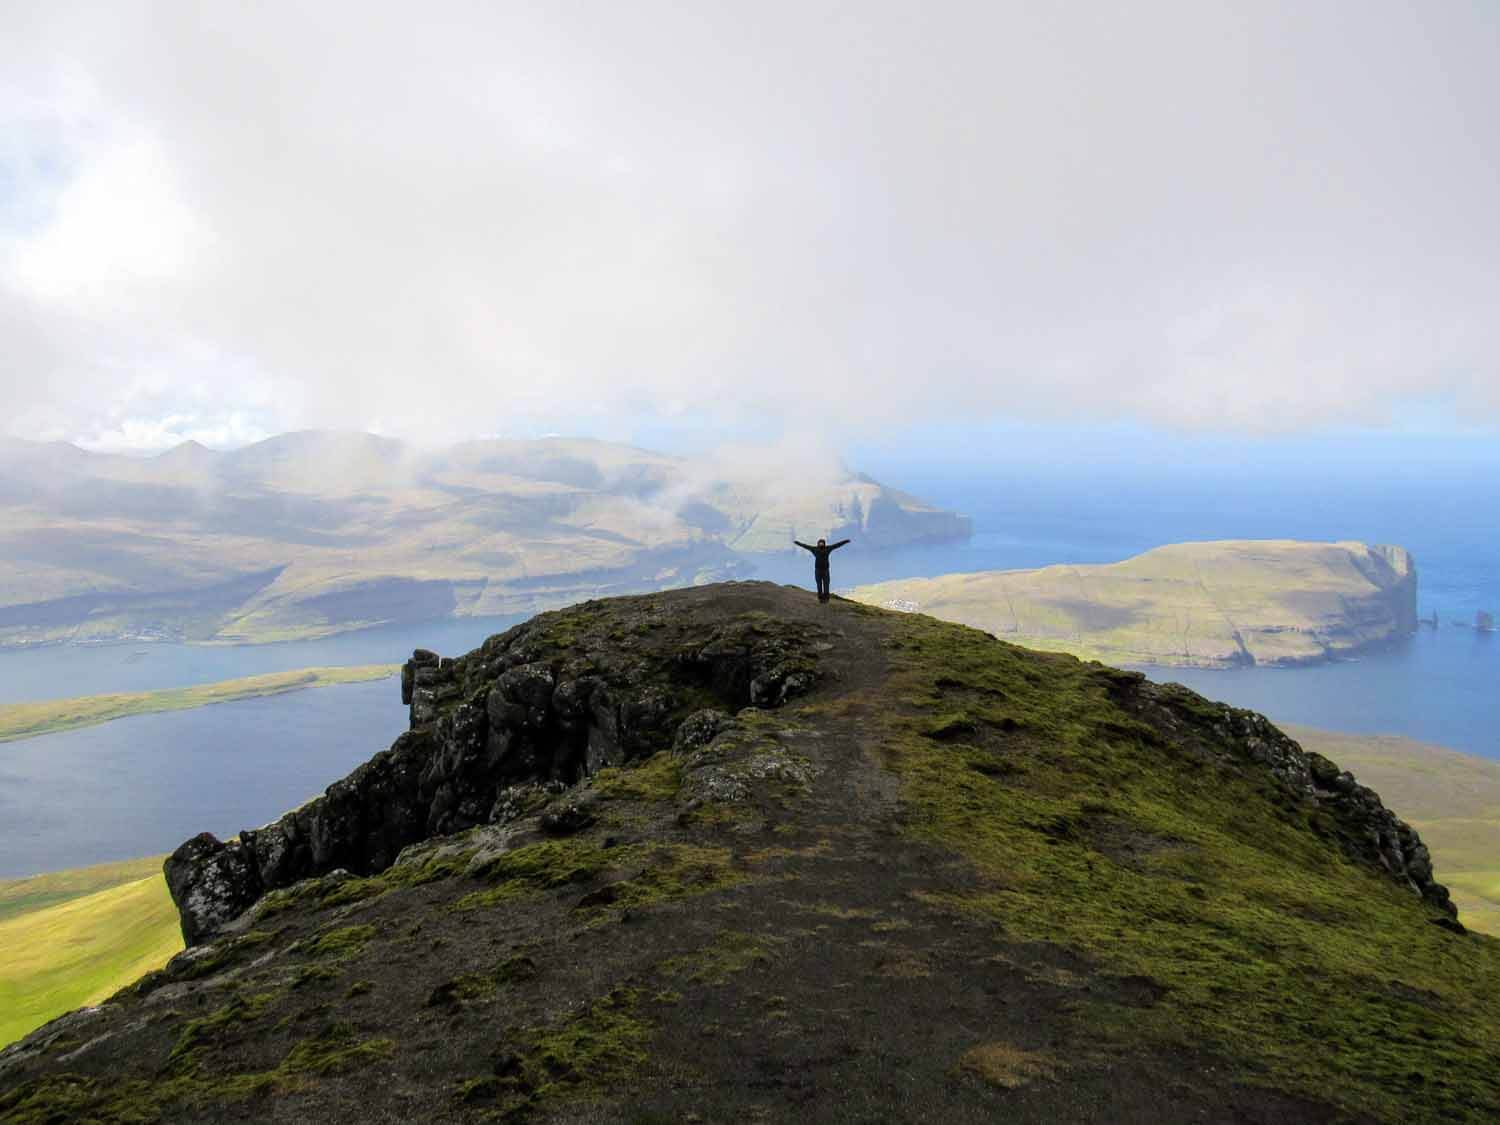 denmark-faroe-islands-eysturoy-slættaratindur-slaettaratindur-peak-highest-summit-hike-low-clouds-foggy.jpg